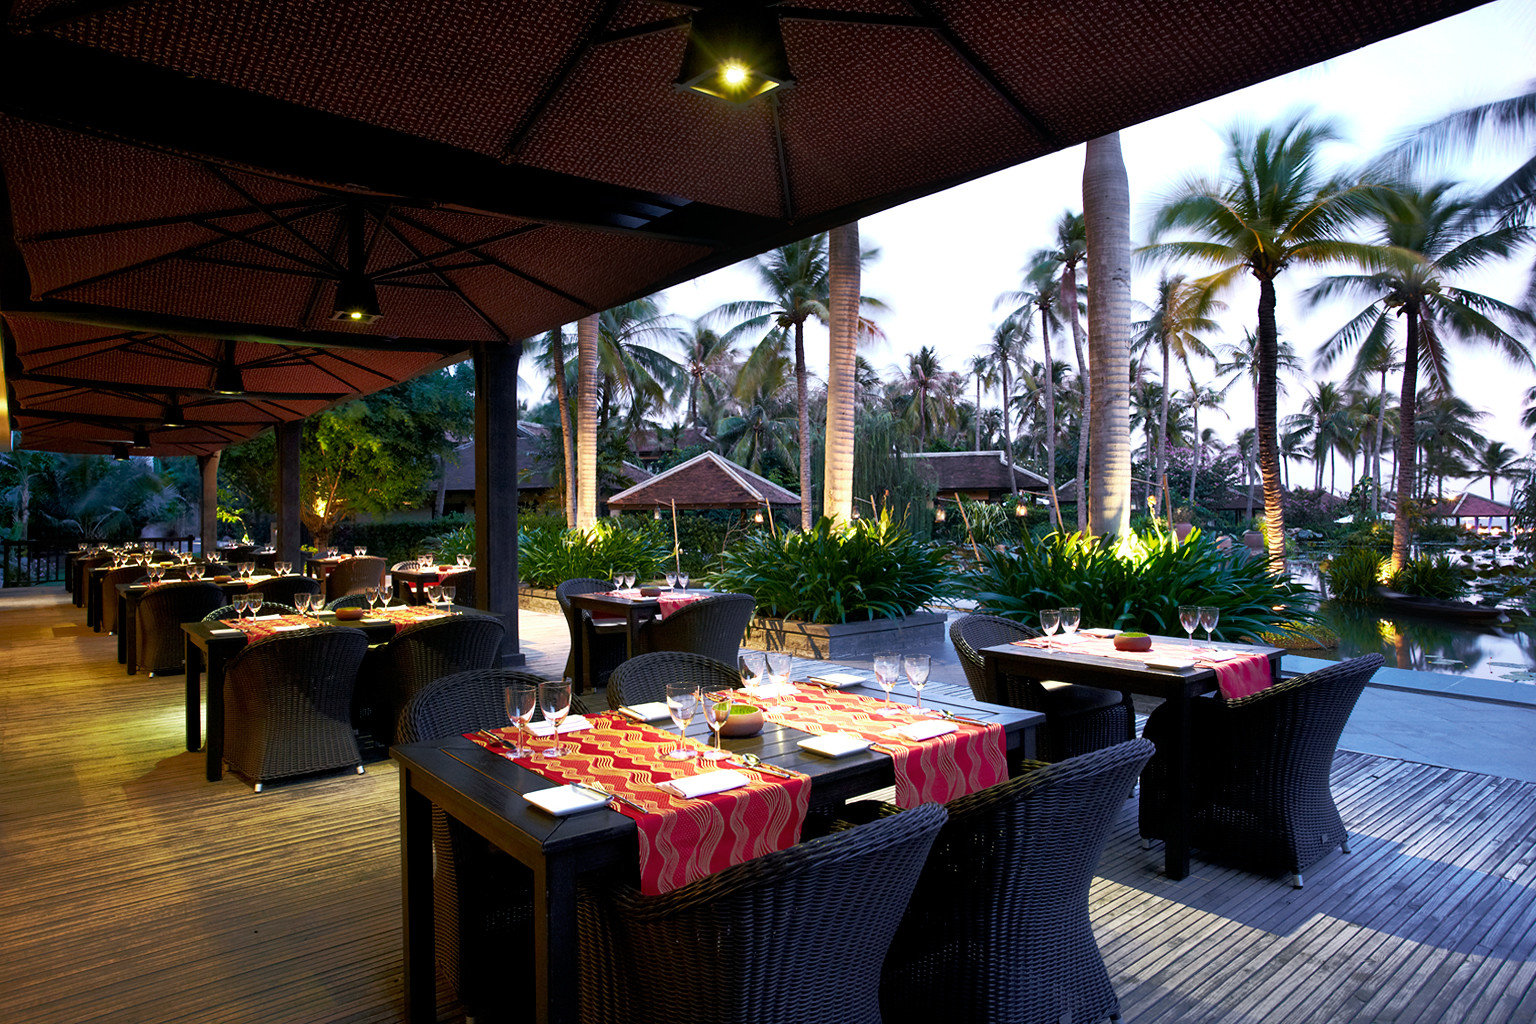 Beachfront Cultural Dining Drink Eat Jungle Outdoors Resort Tropical building restaurant function hall